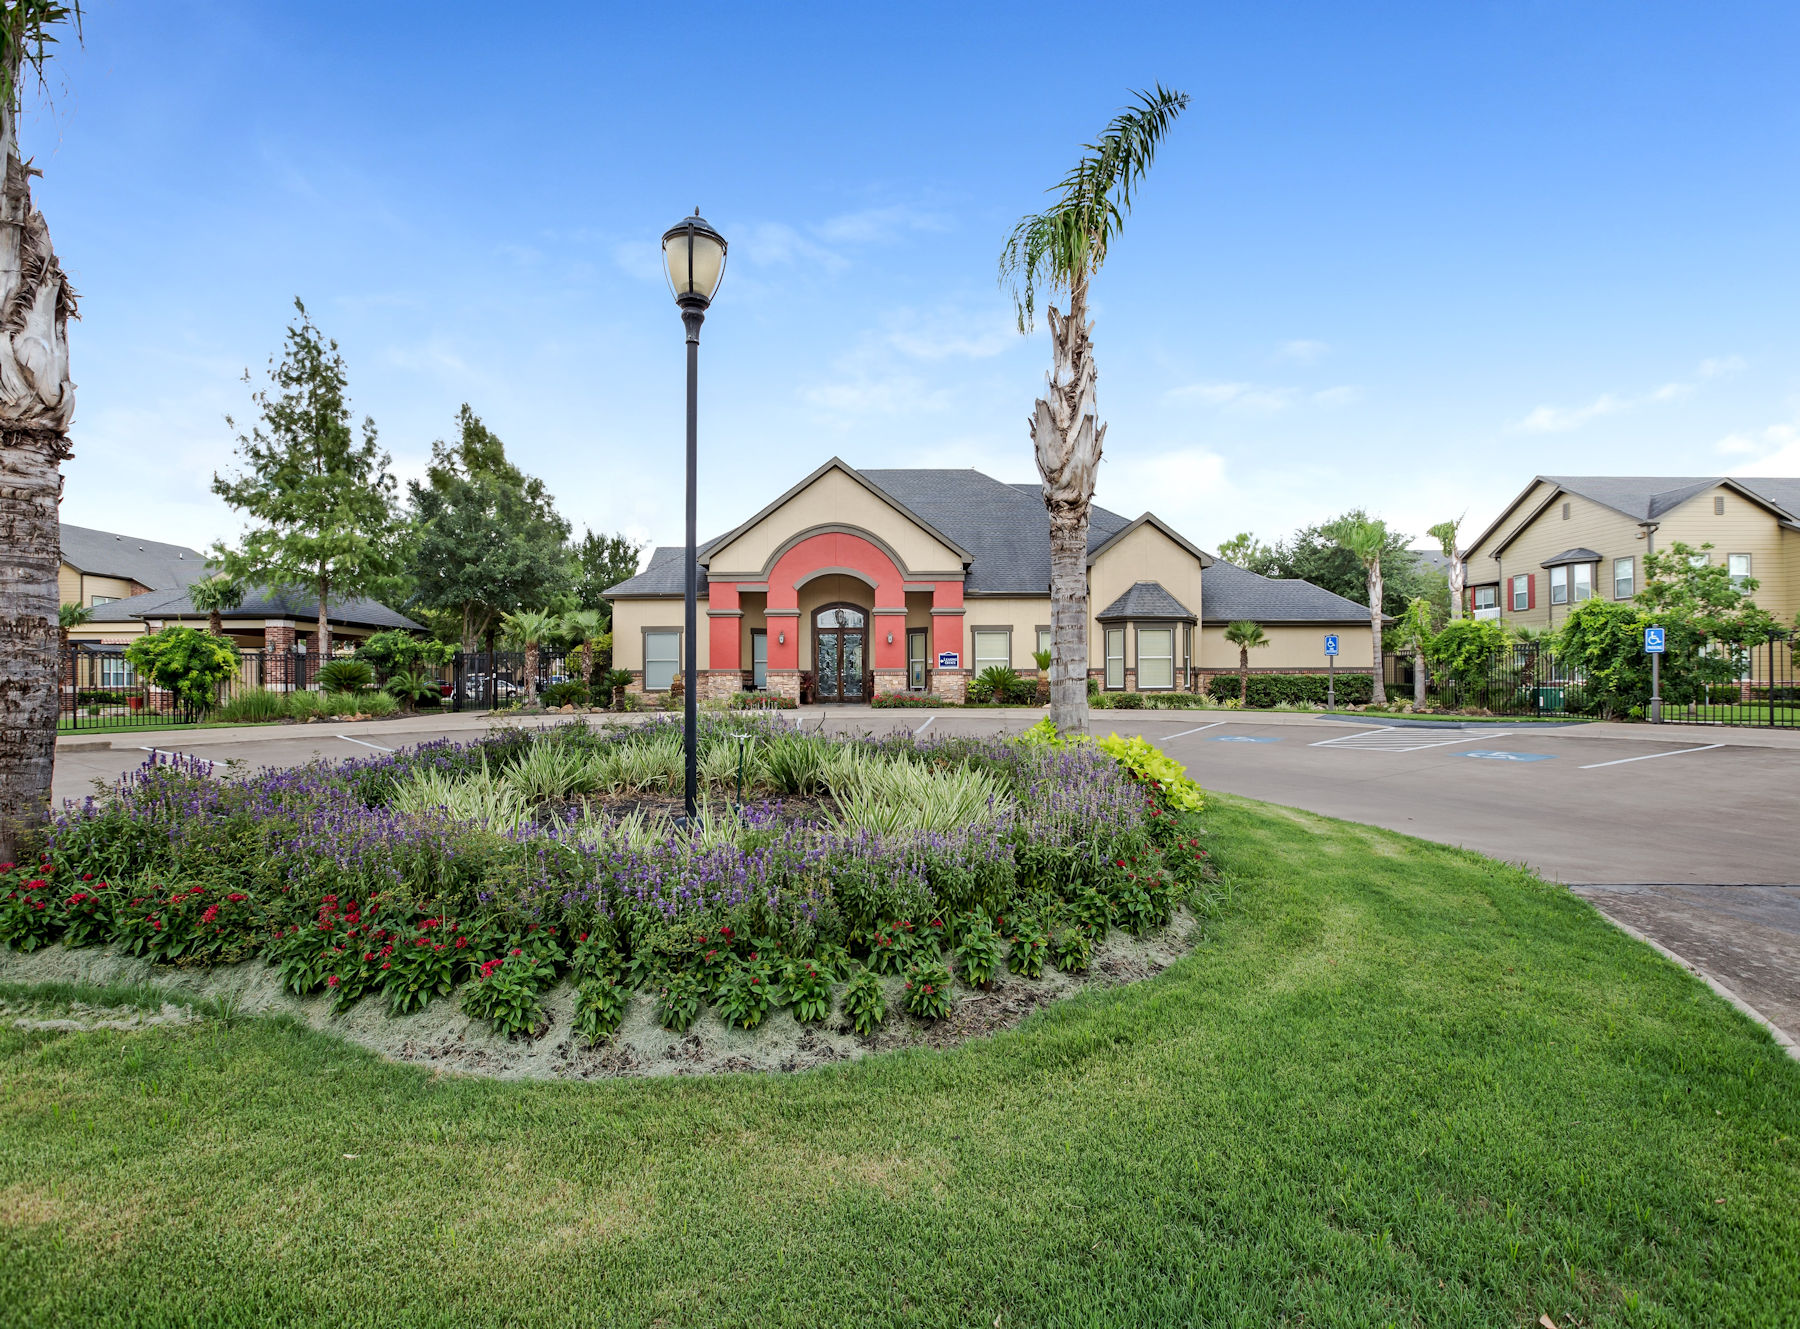 Exterior leasing office with driveway, flowers, grass, trees, and bushes.